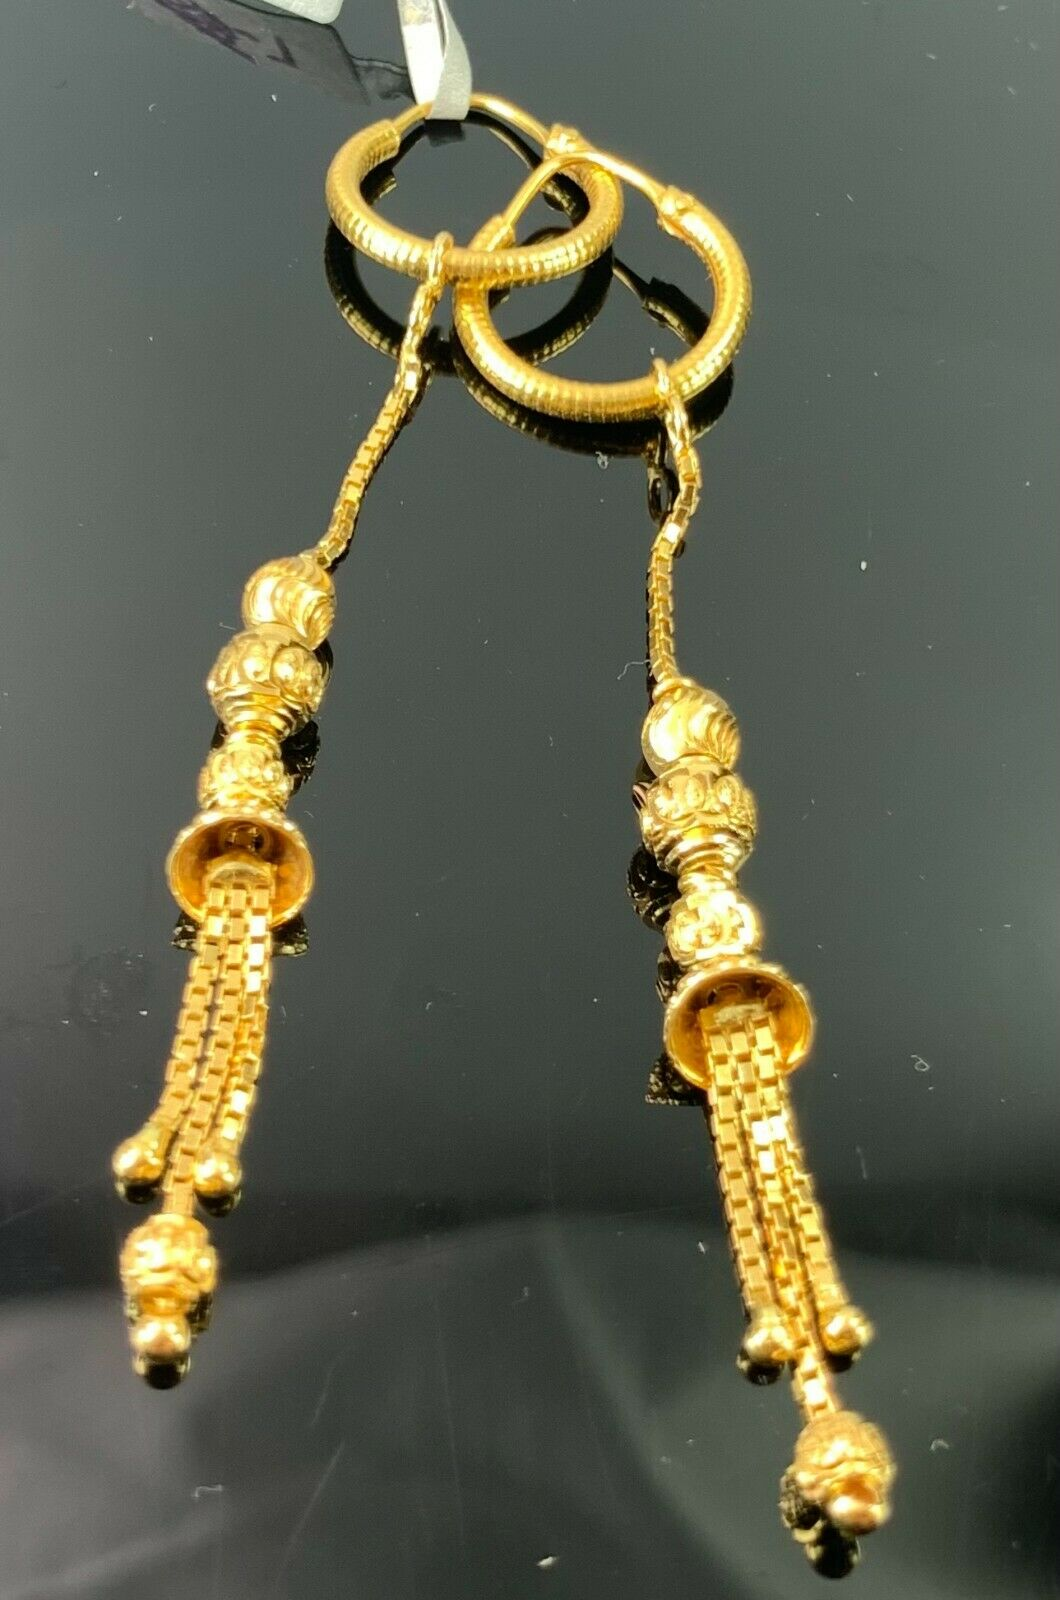 22k Earrings Solid Gold Ladies Jewelry Simple Hoops with Dangle and Drop E3856